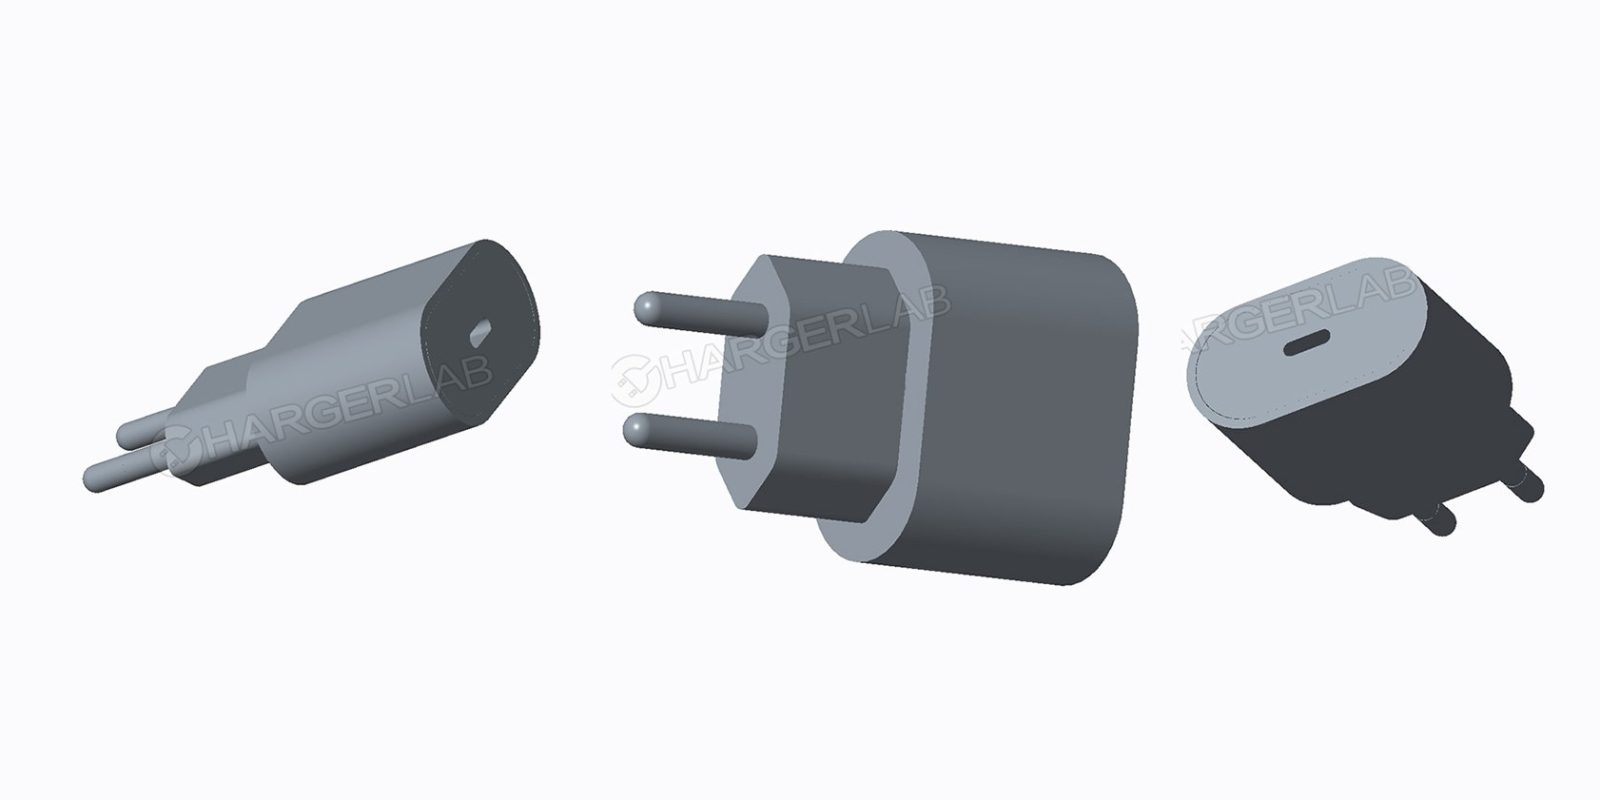 Renders Claim To Show New 18w Apple Usb C Charger Will Be Bundled Picture The Power Jack Receiving End Plugs In Our Adapter With 2018 Iphones